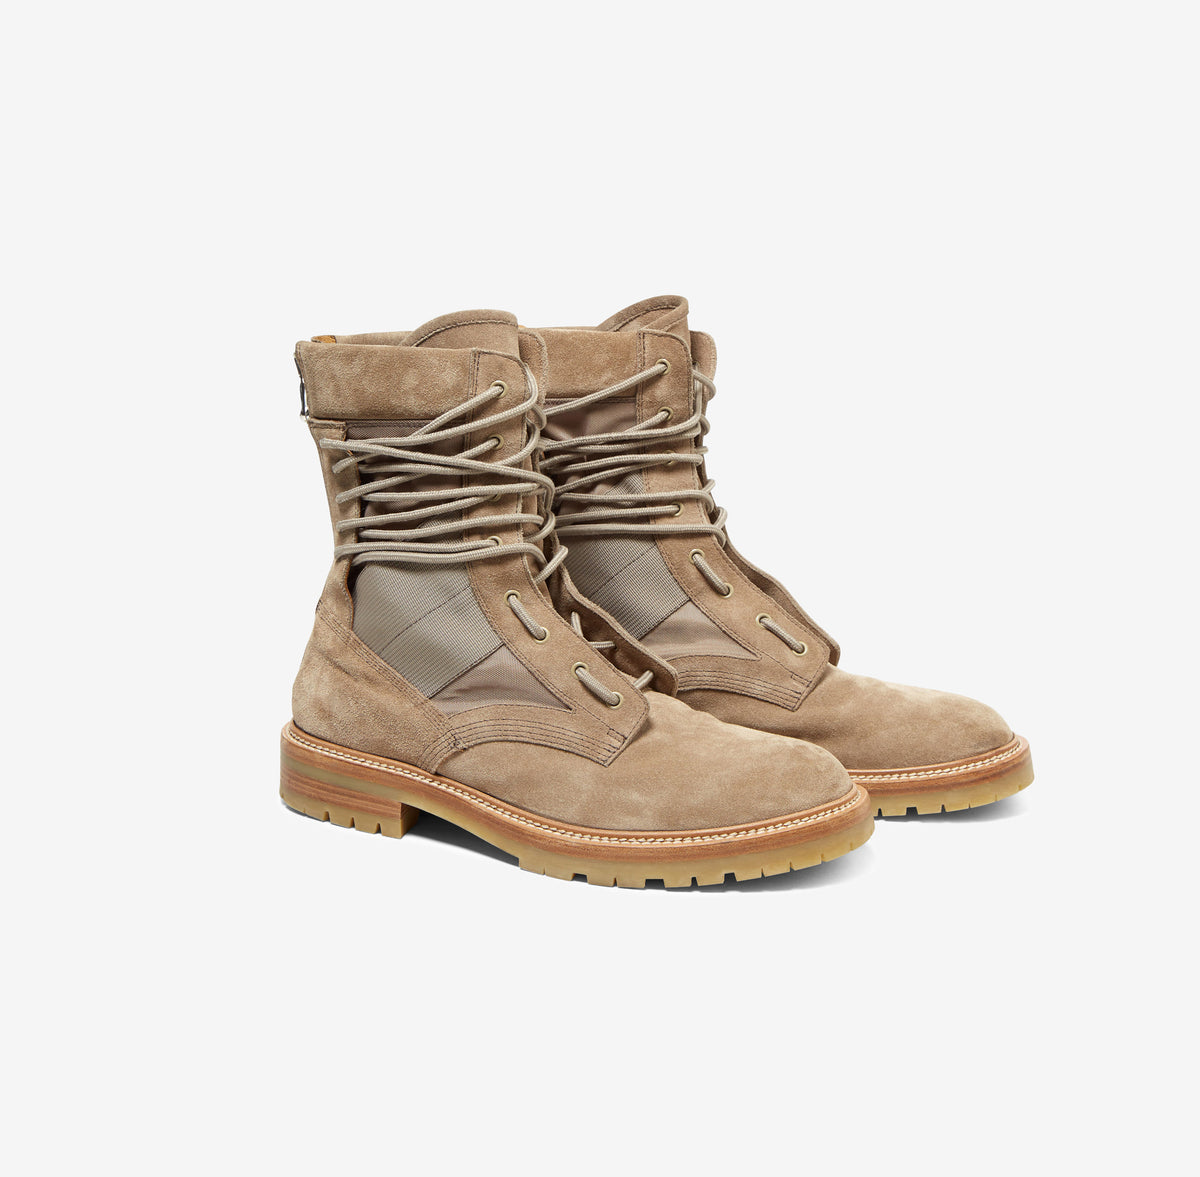 files/M_Footwear_Army_Combat_Boot_TAN-3_SQ.jpg